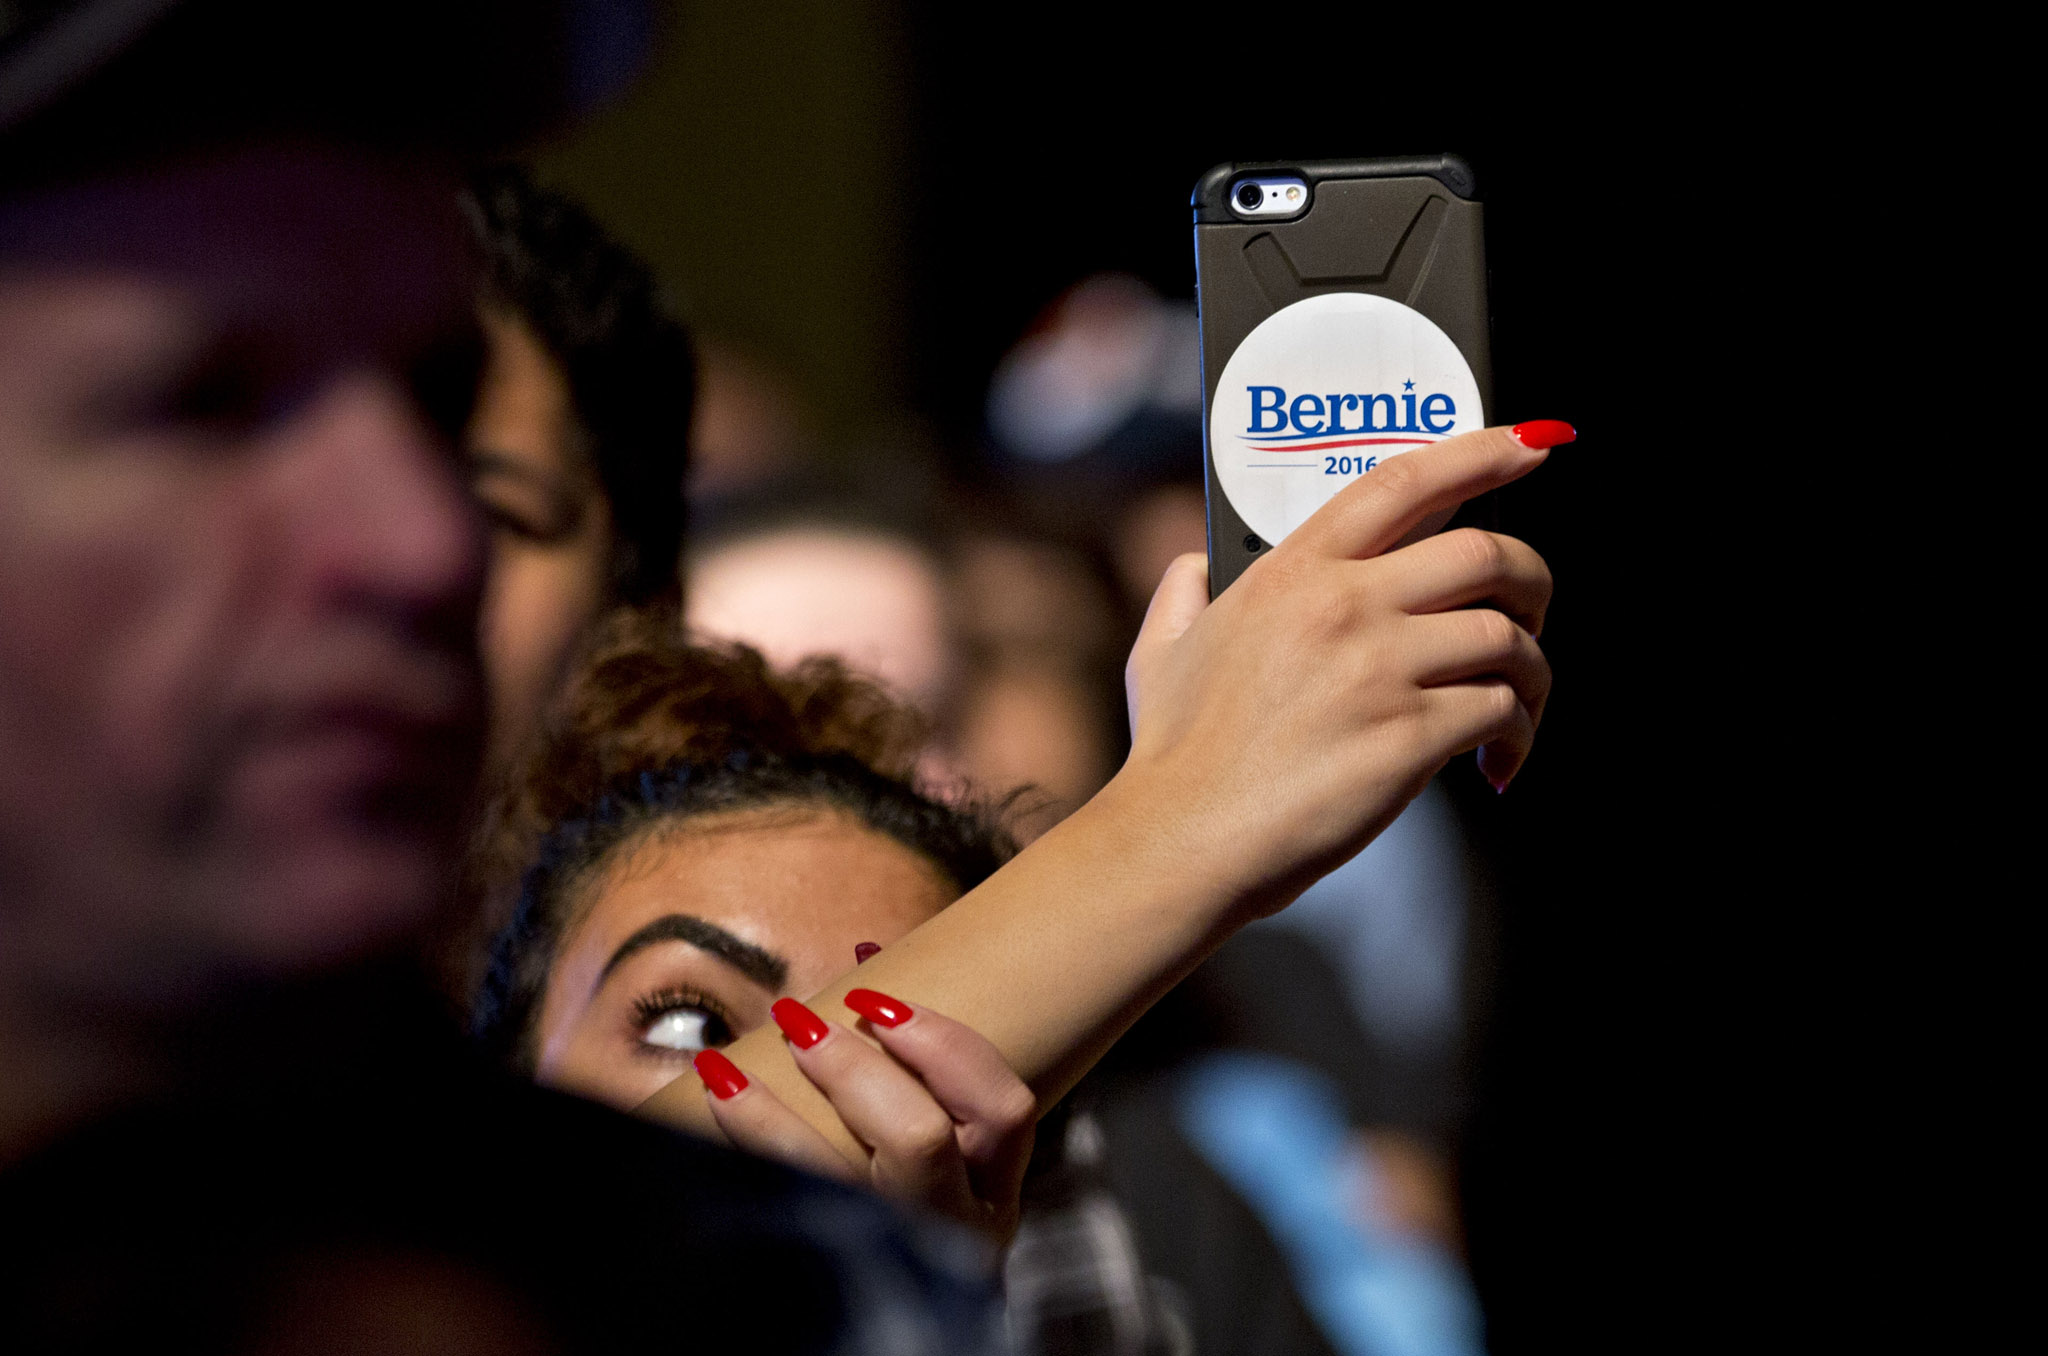 Presidential Candidate Bernie Sanders Holds Atlantic City Campaign Rally...An attendee with a campaign sticker on her phone takes video as Senator Bernie Sanders, an independent from Vermont and 2016 Democratic presidential candidate, not pictured, speaks during a rally at Boardwalk Hall in Atlantic City, New Jersey, U.S., on Monday, May 9, 2016. Atlantic City, the struggling casino hub weeks away from bankruptcy absent state action that has been hit hard by the decline of its dominant industry, is a fitting platform for Sanders populist message on how corporations reap profits while urban areas are neglected. Photographer: Andrew Harrer/Bloomberg